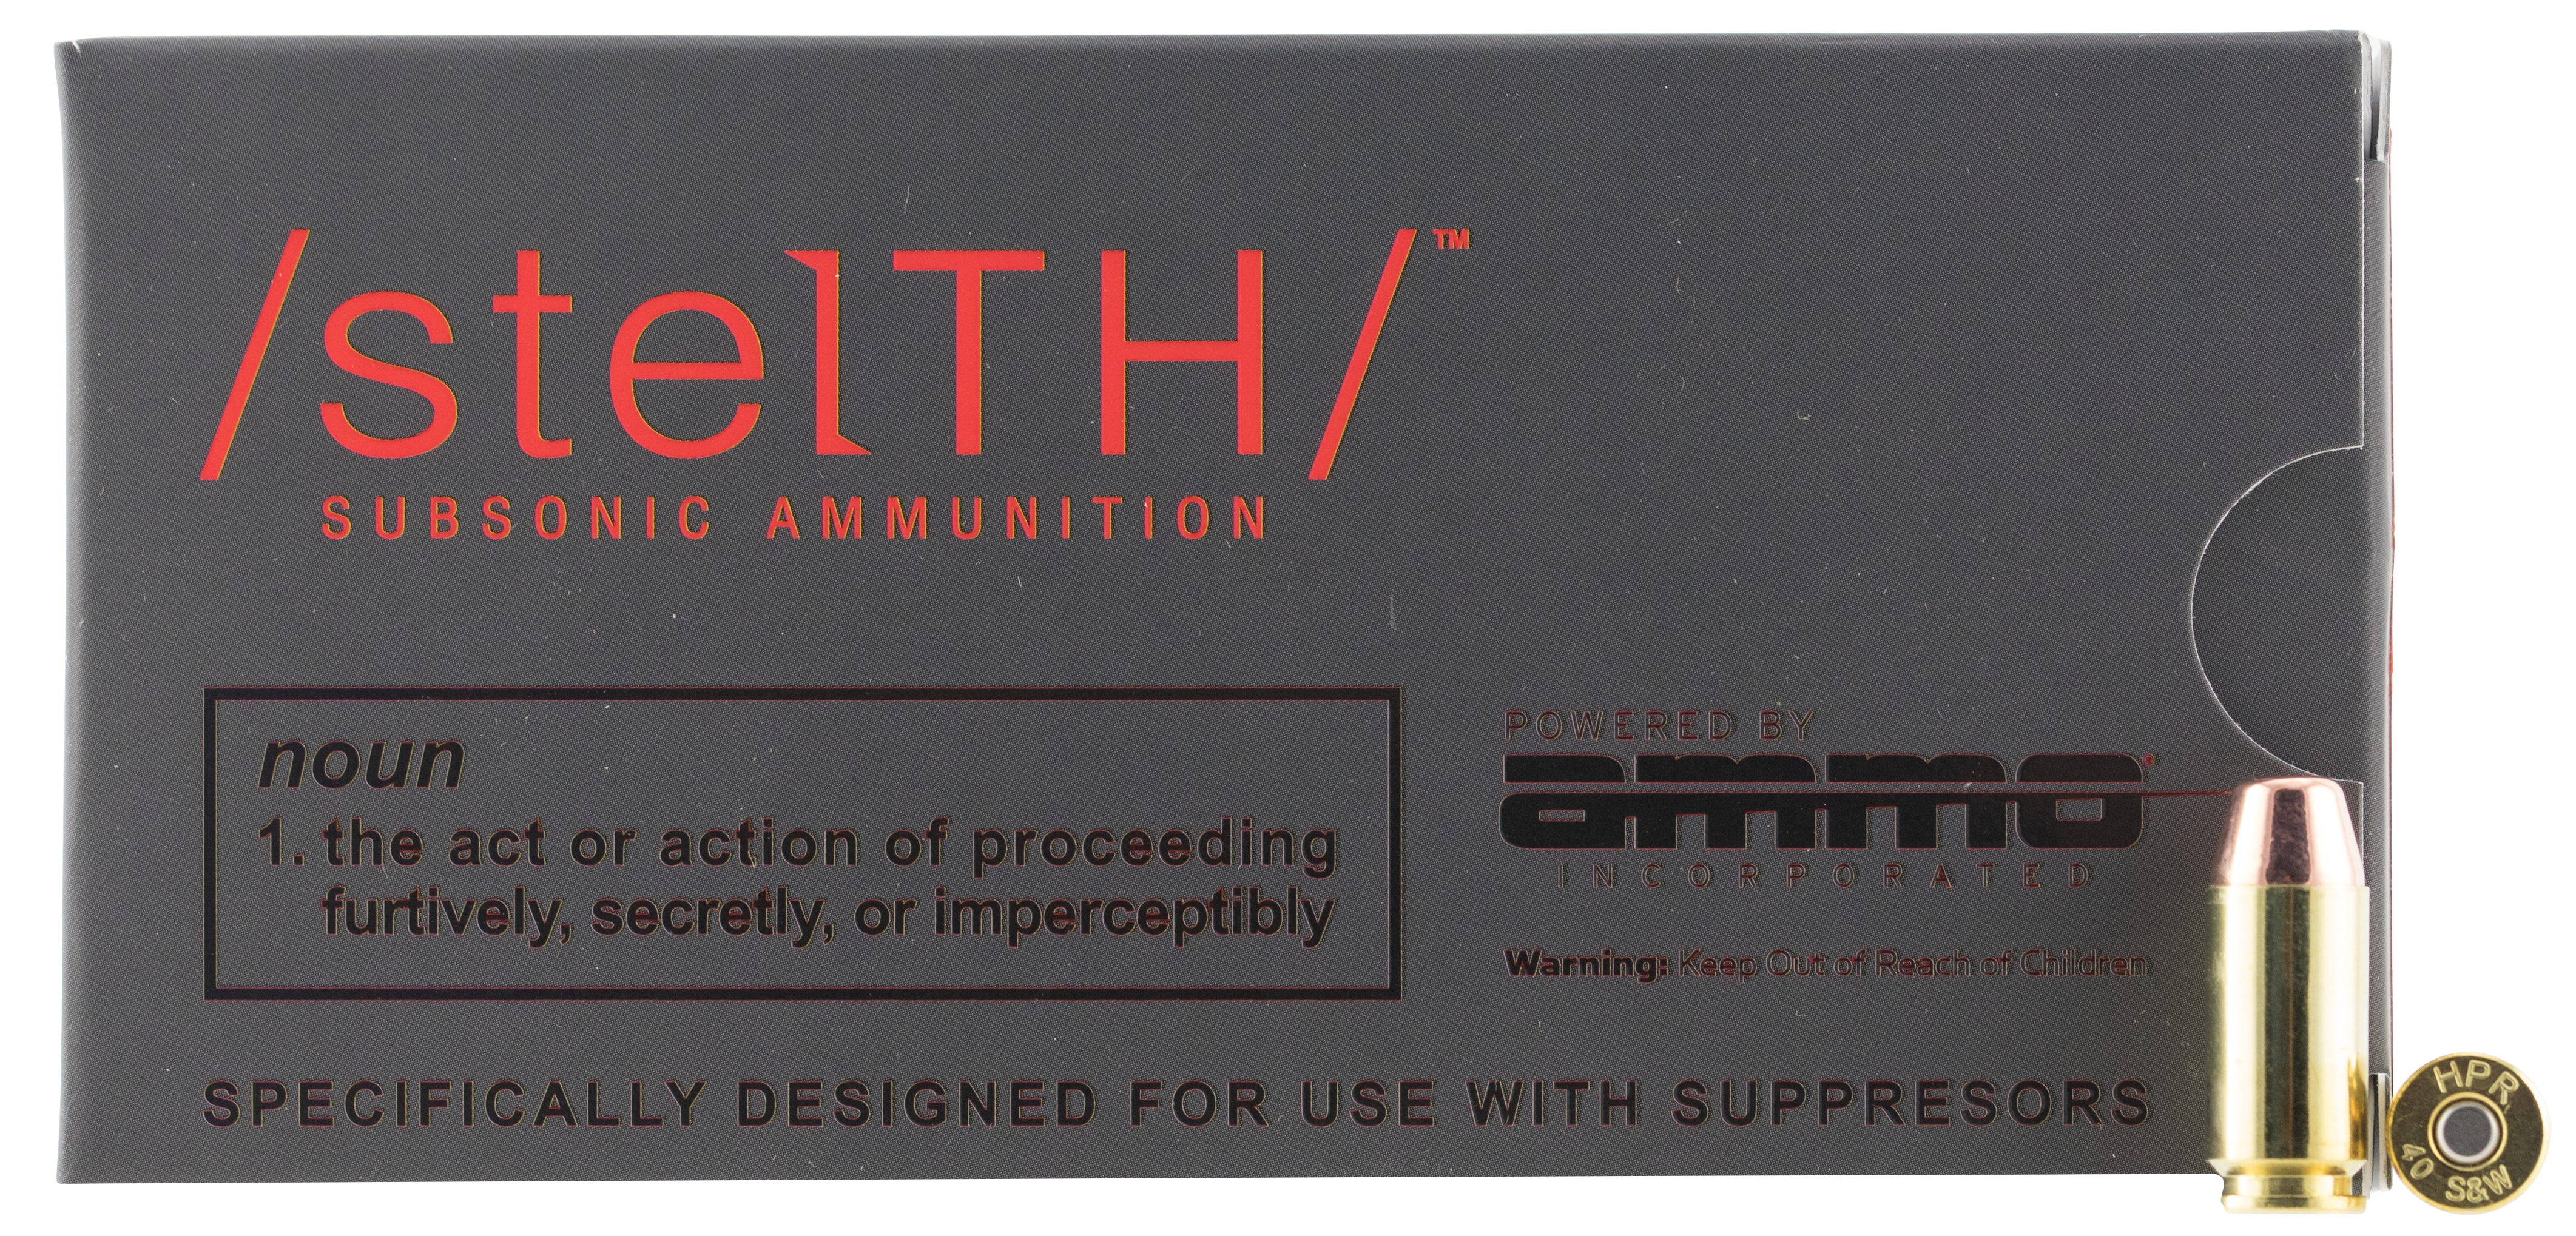 Ammo Inc Stelth Ammunition 40 S&W 180 Grain Total Metal Jacket Per 50